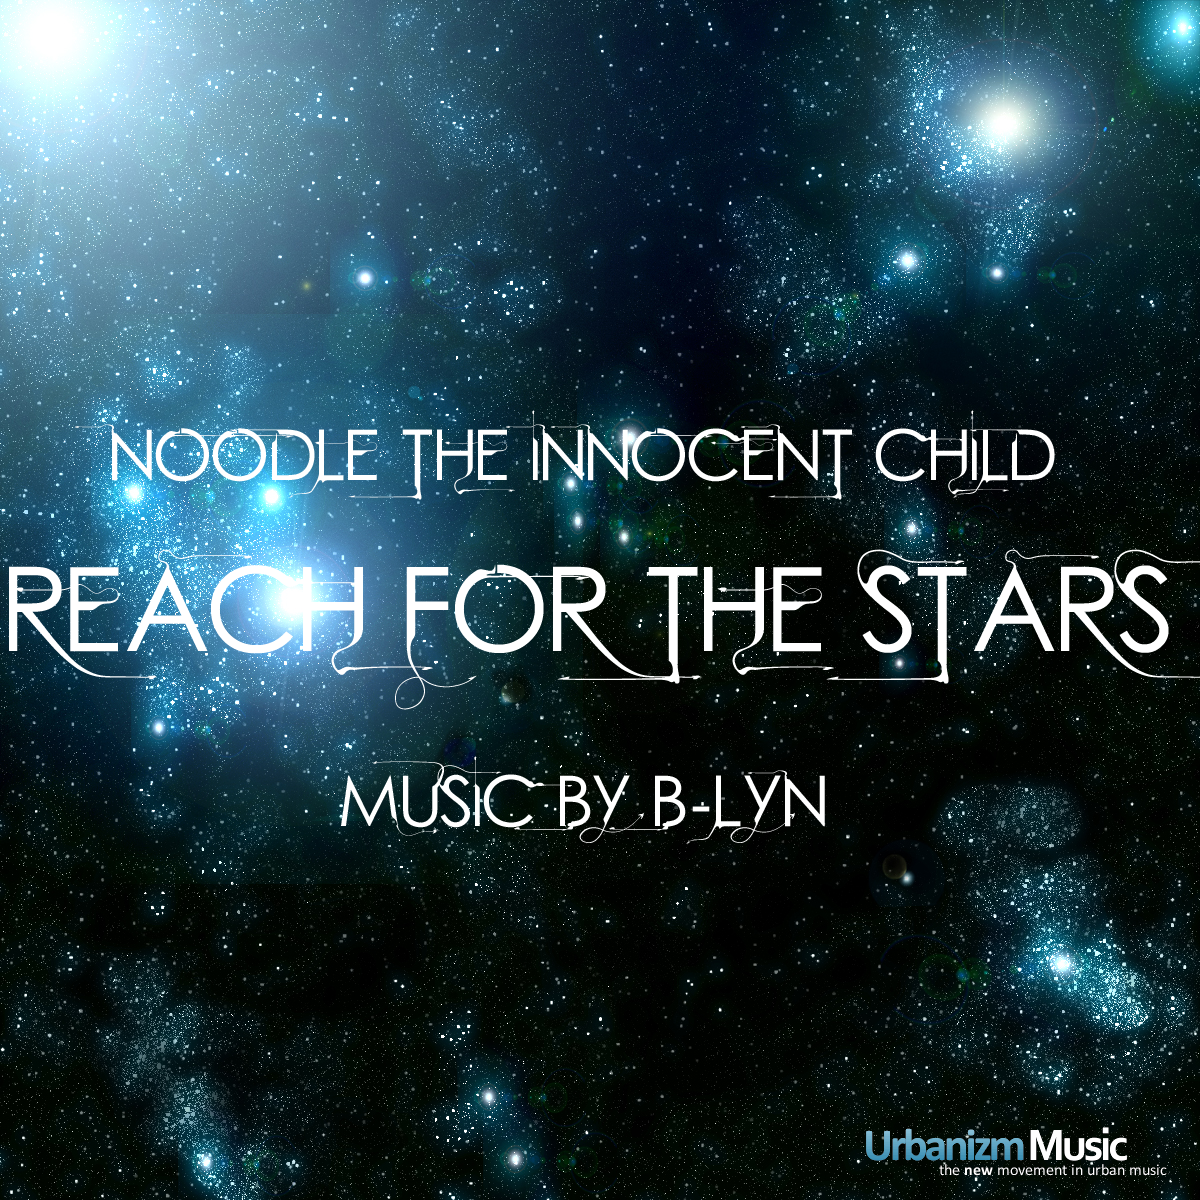 Noodle the Innocent Child - Reach For the Stars (music by B-Lyn)